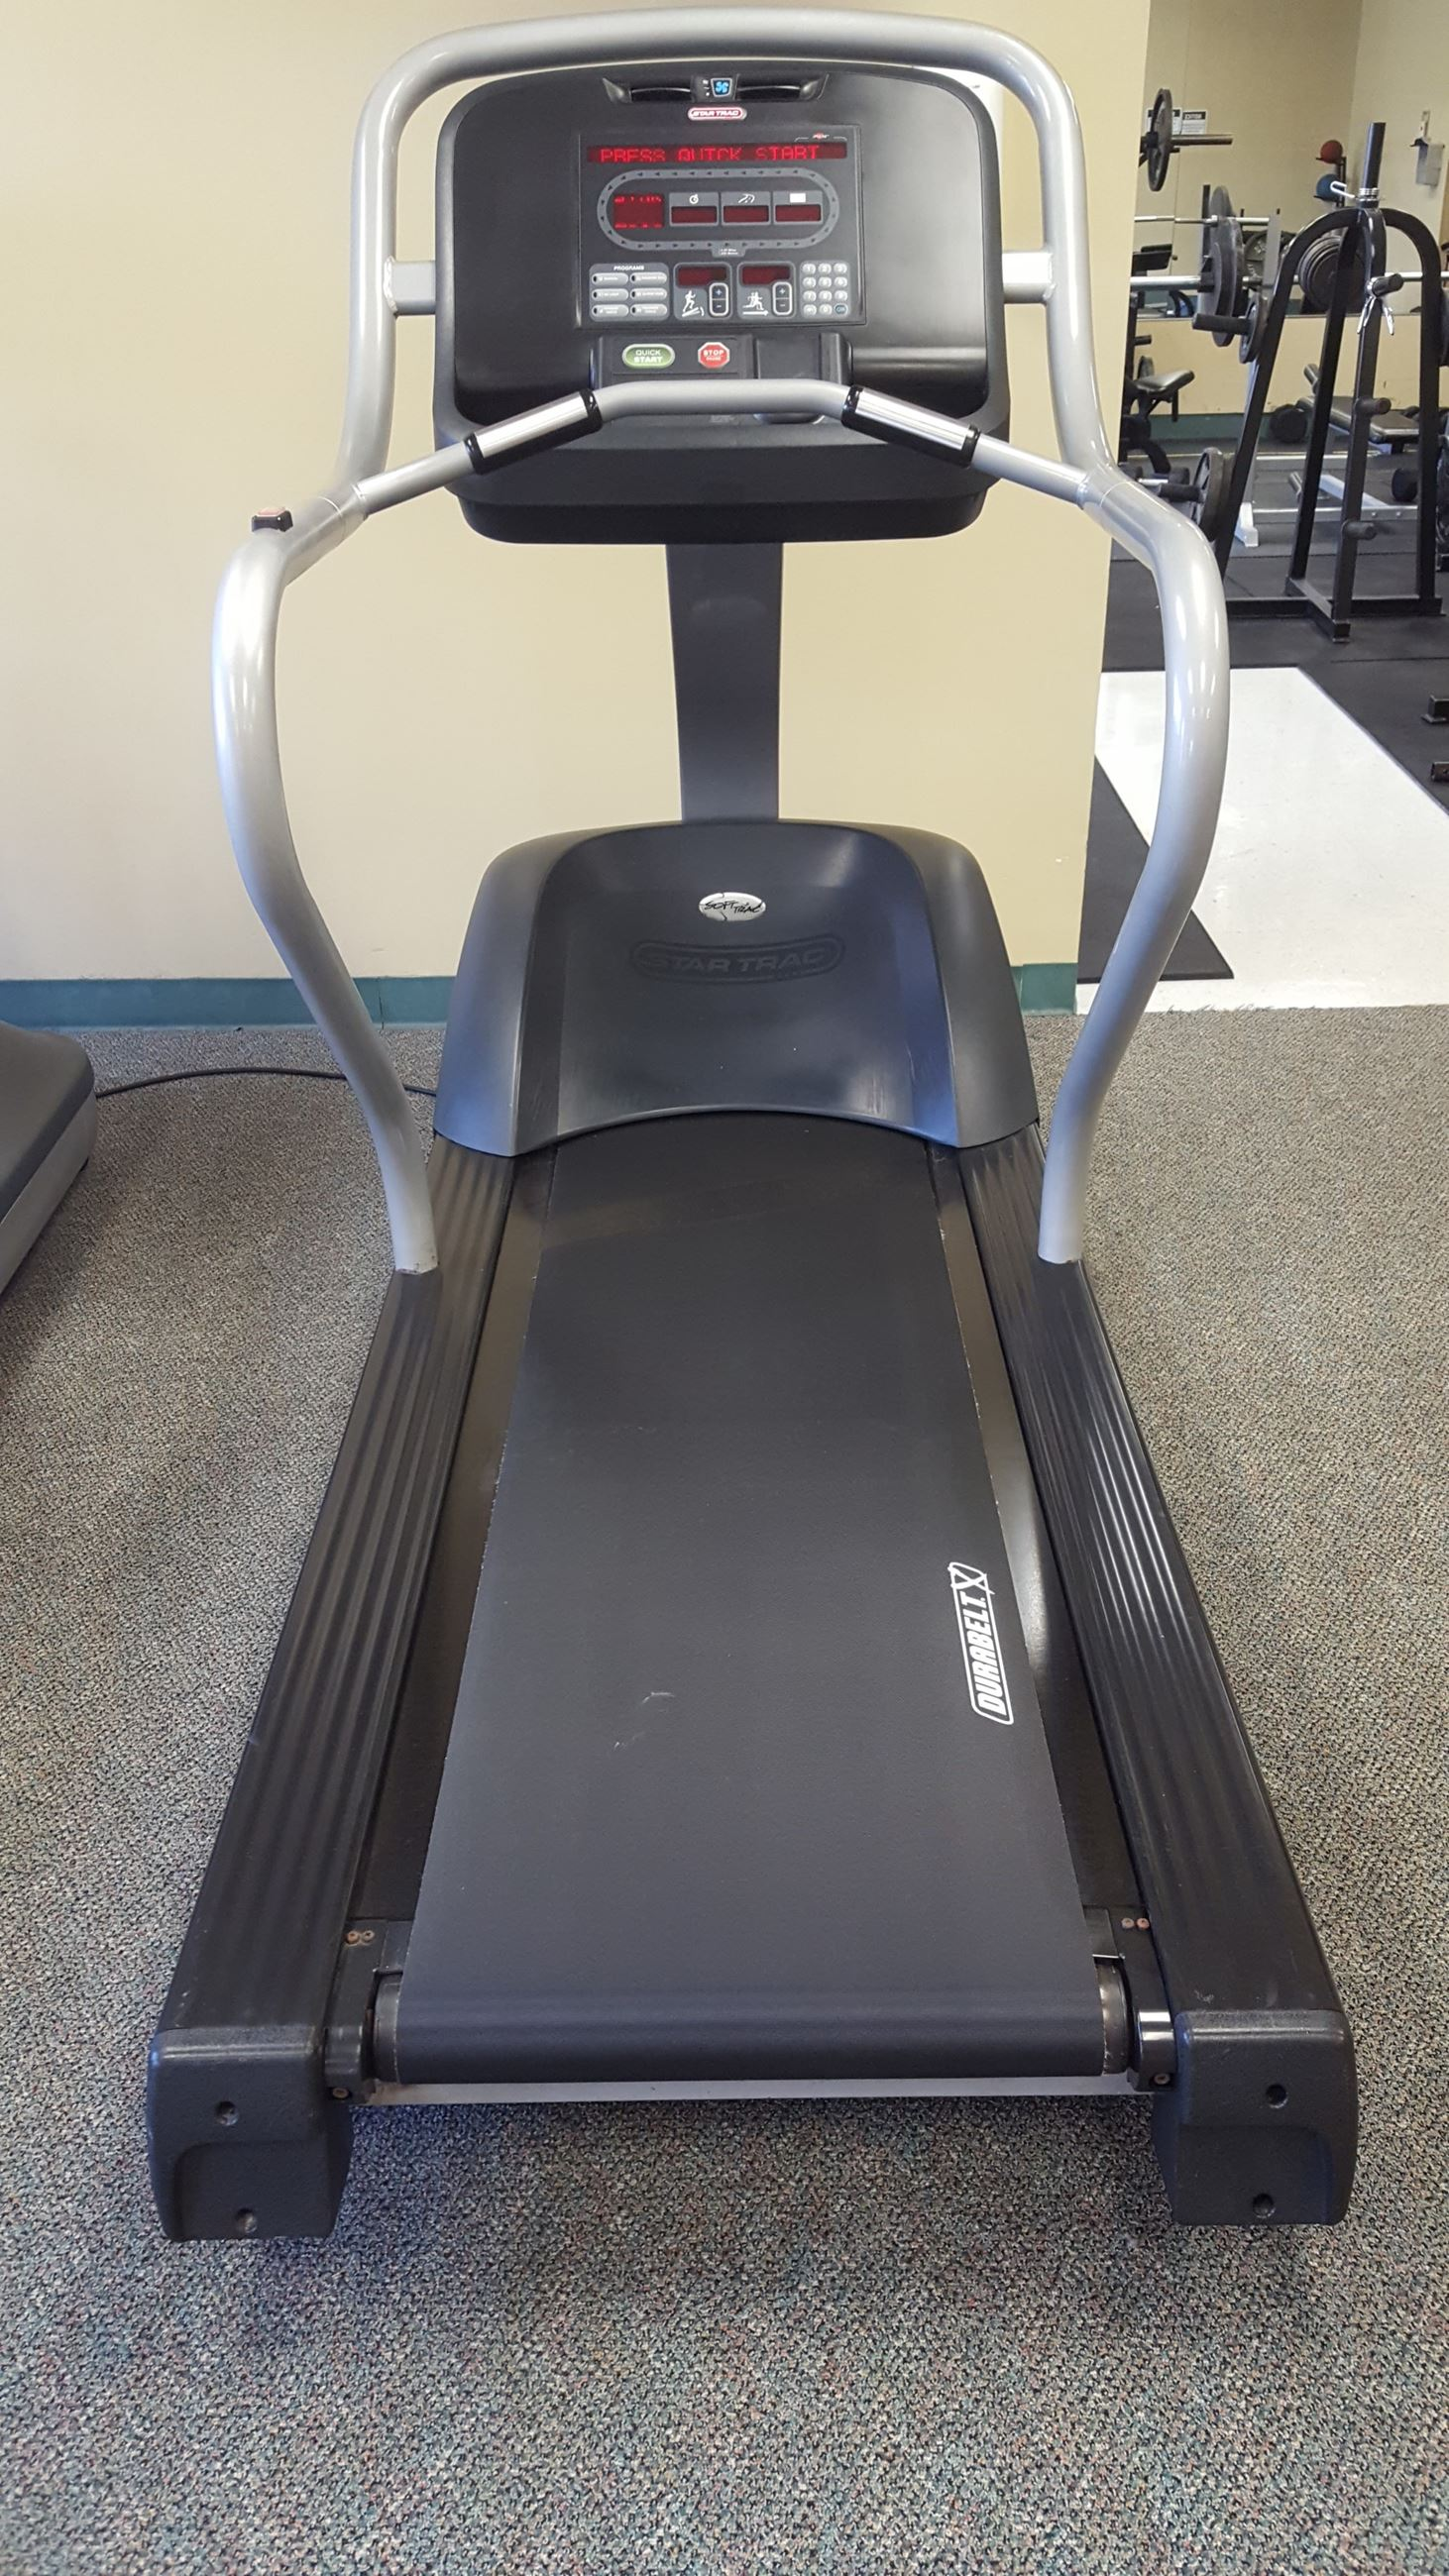 Star Trac E-Series Club Treadmill